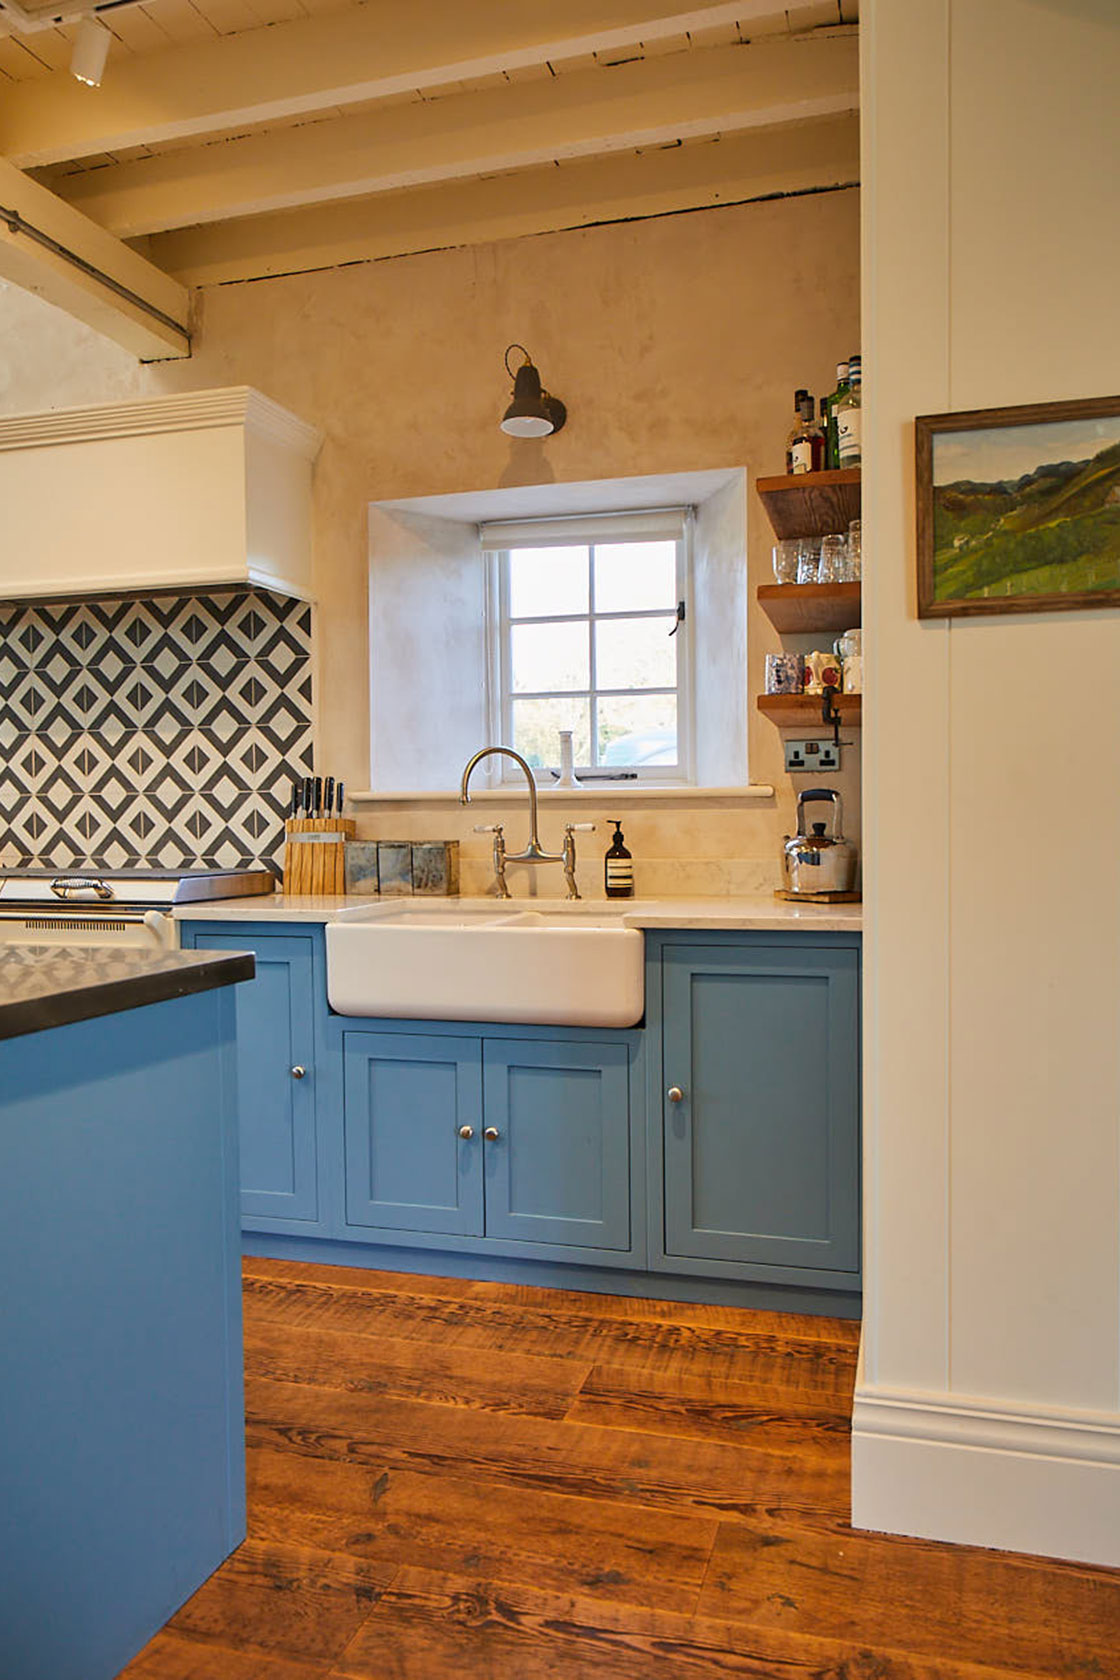 Sink run with stainless steel mixer tap traditional shaker cabinets and ceramic belfast double sink